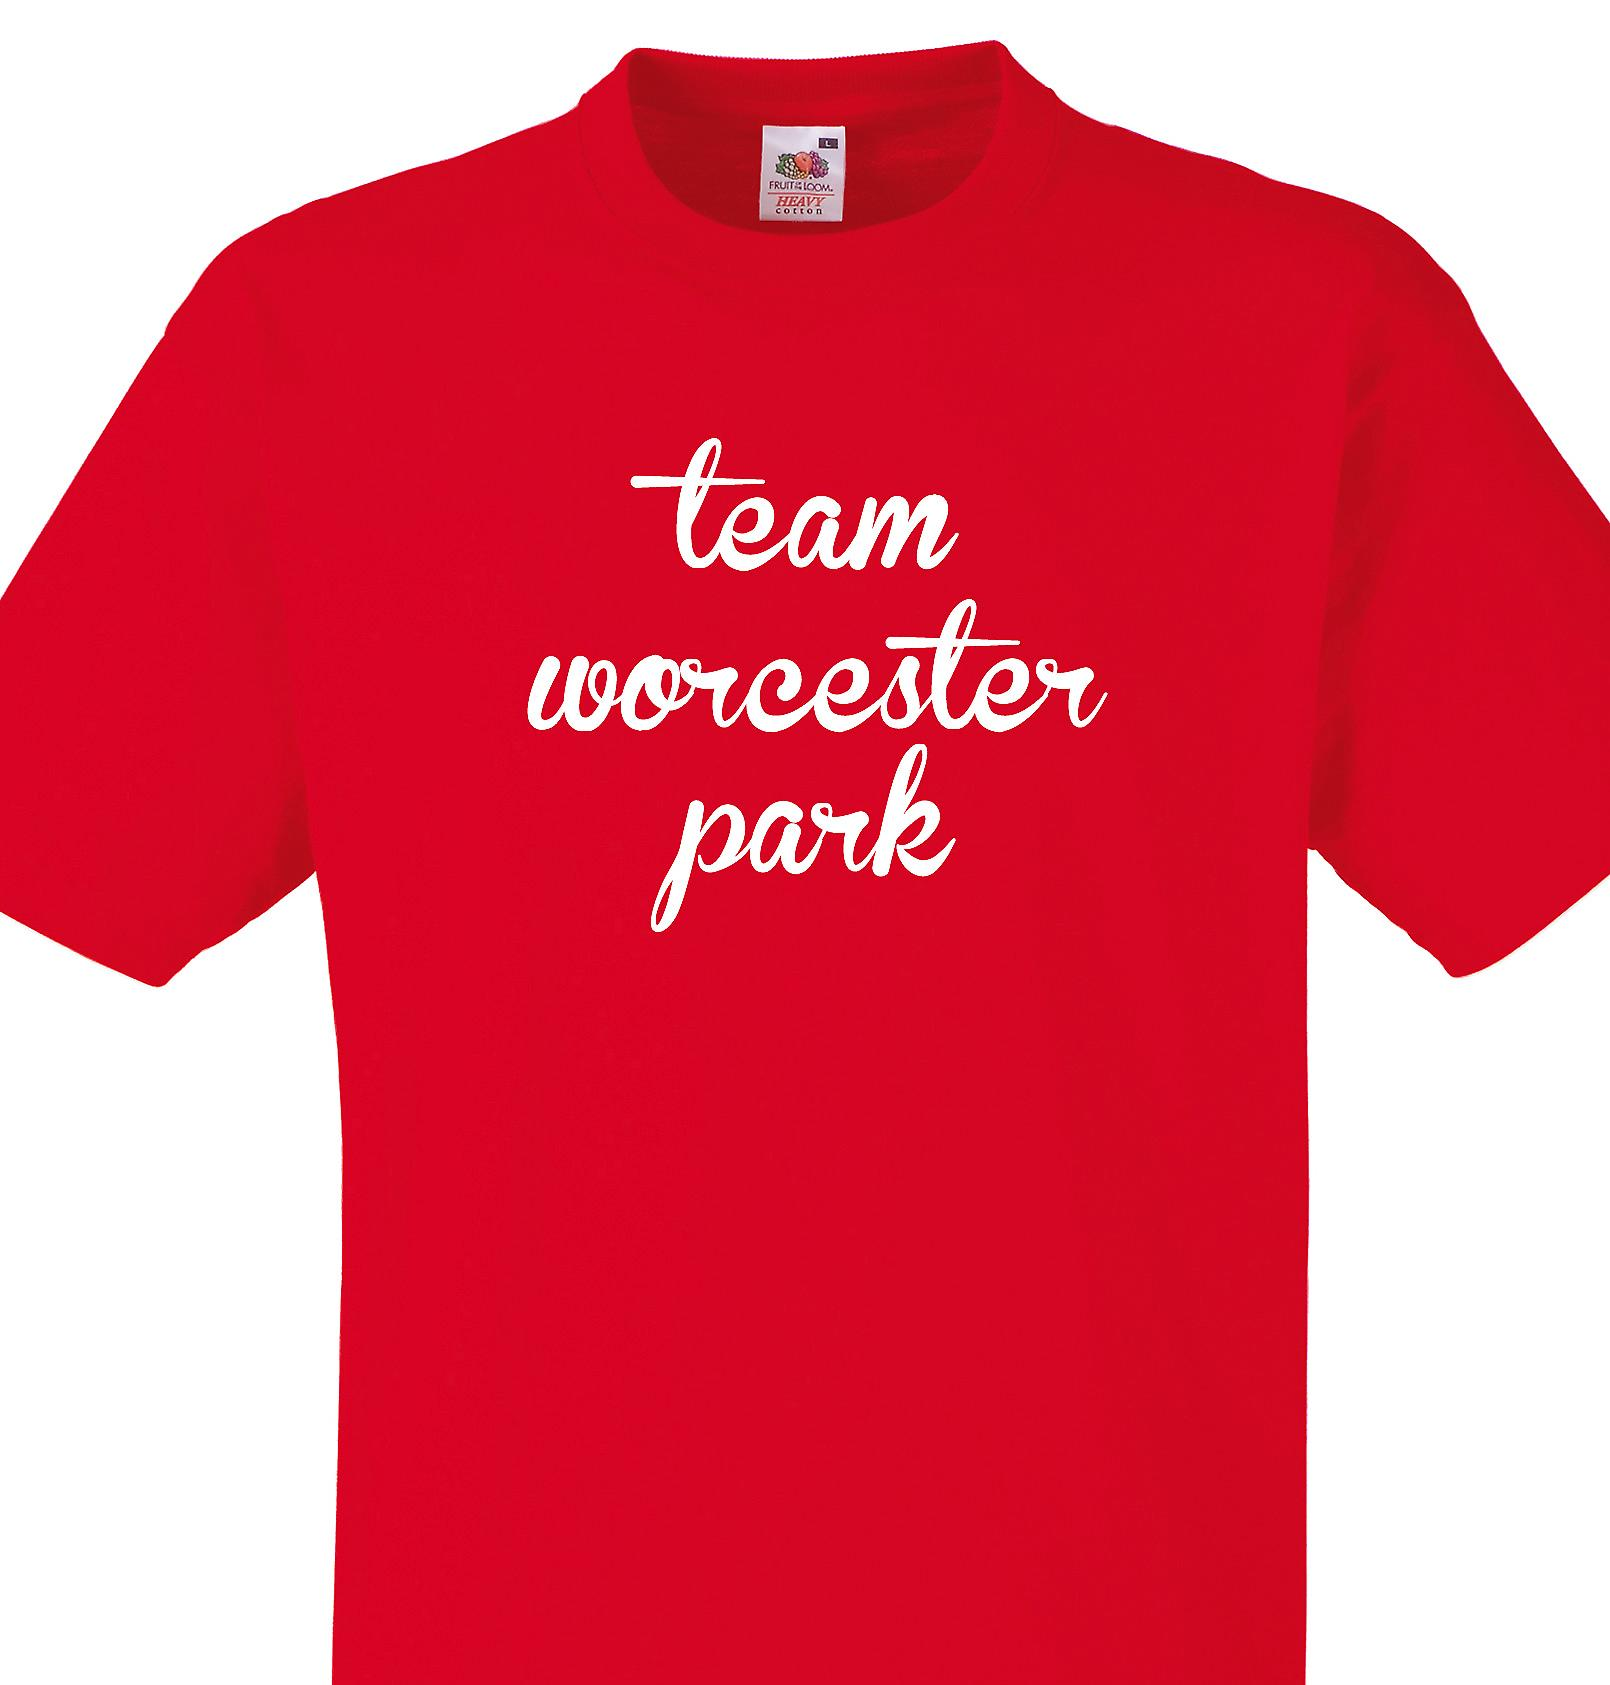 Team Worcester park Red T shirt